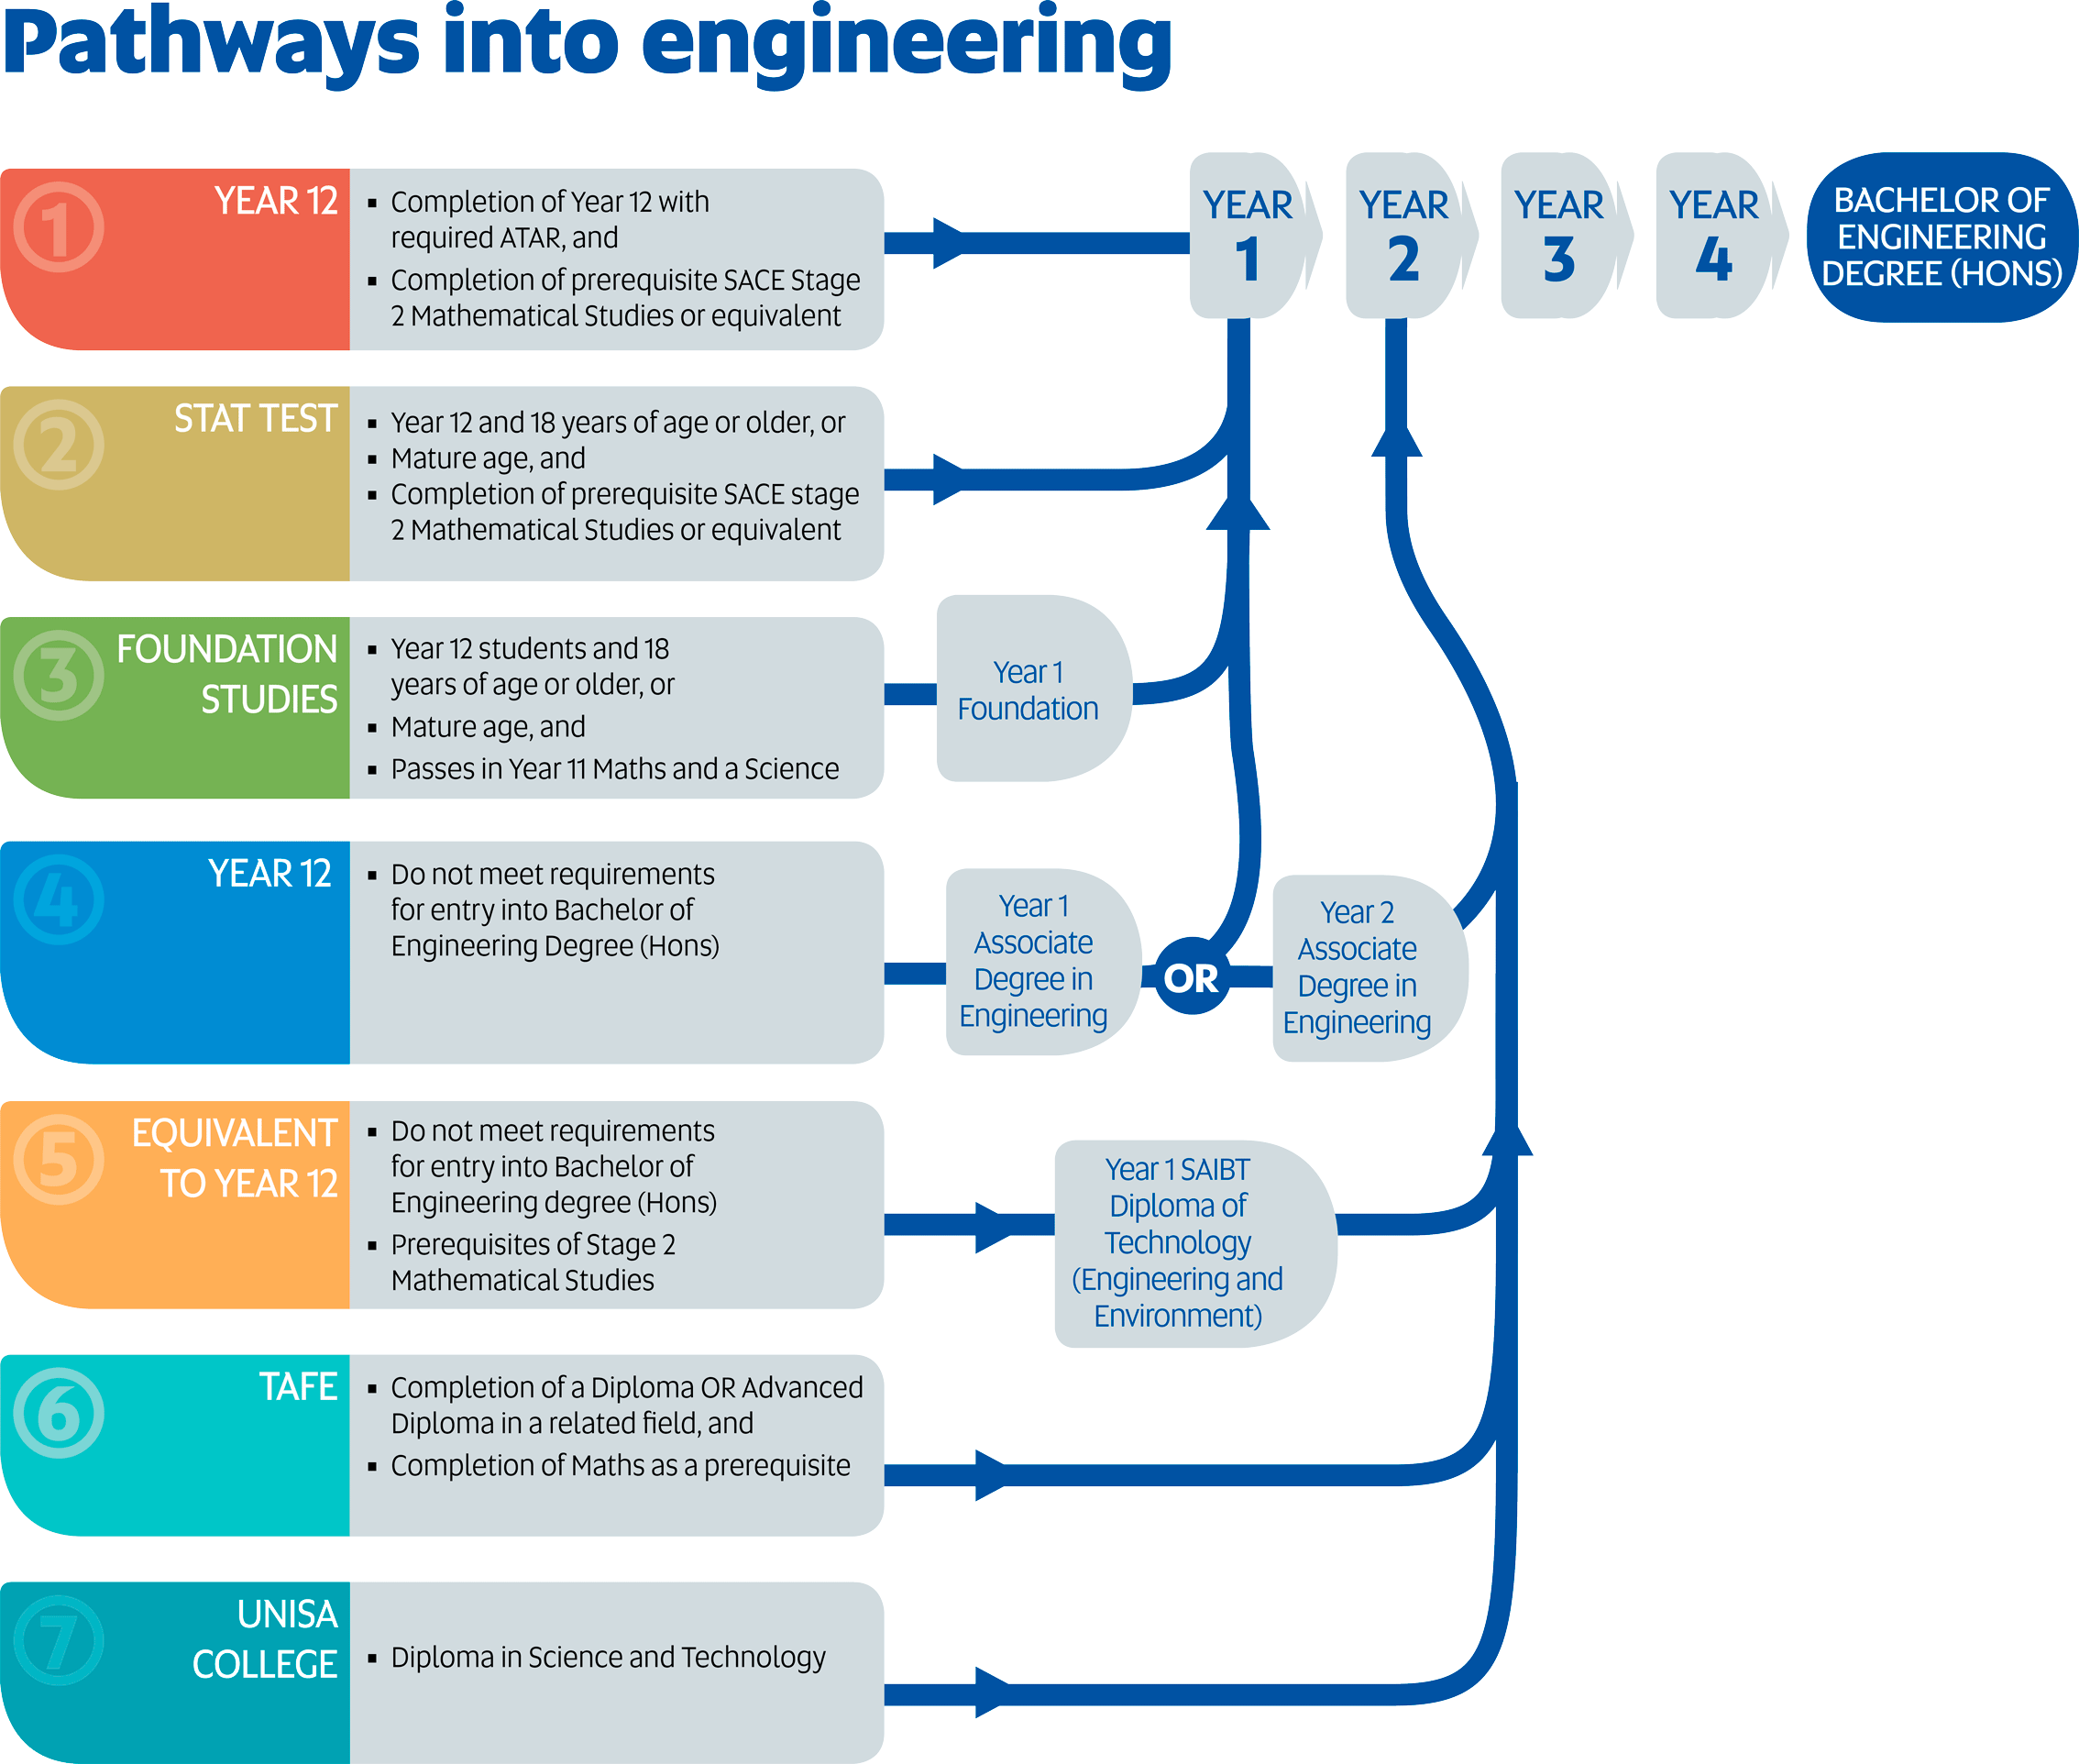 Pathways to an Engineering Degree at UniSA